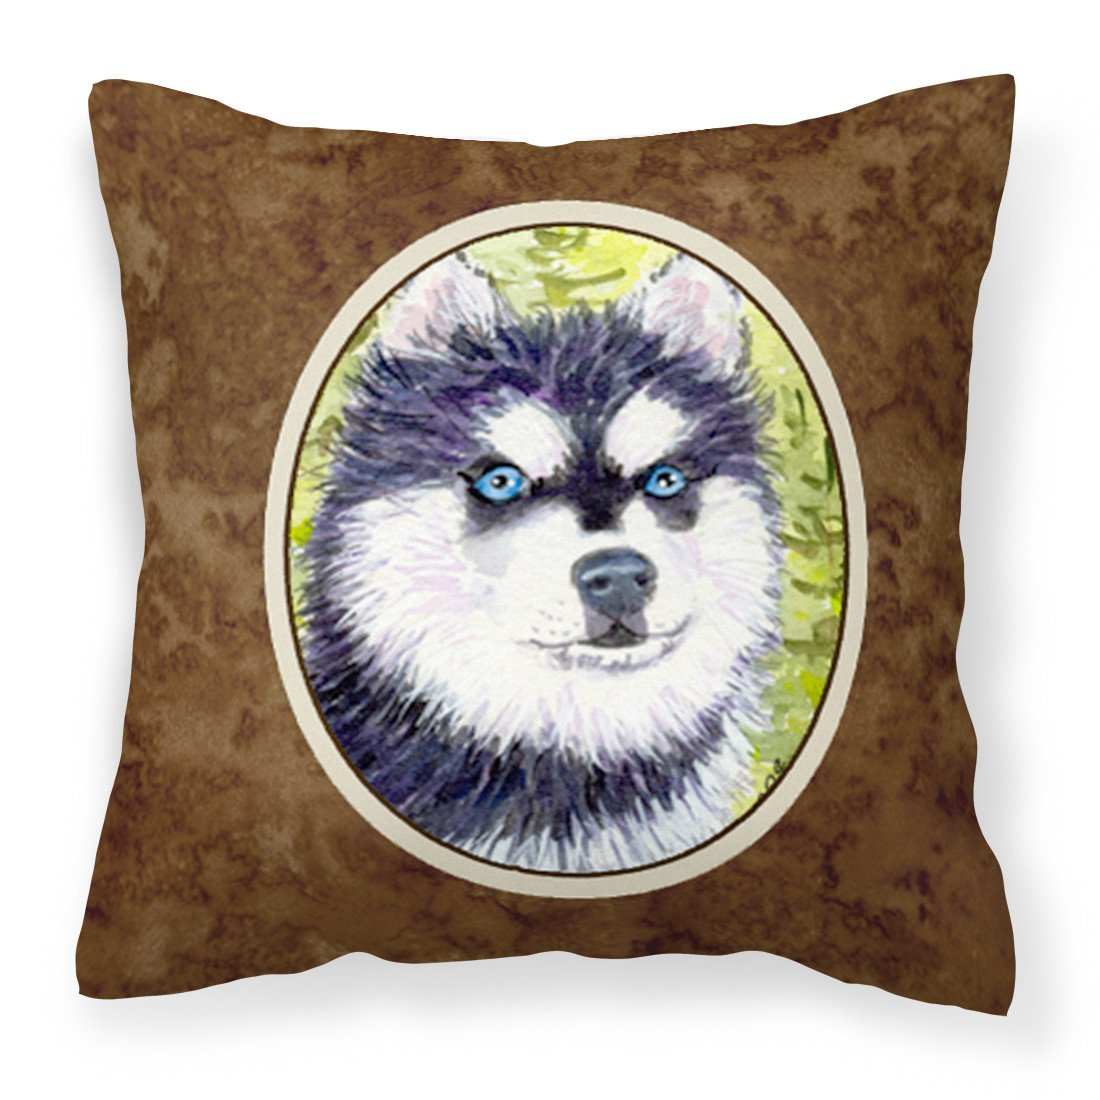 Klee Kai Fabric Decorative Pillow SS8695PW1414 by Caroline's Treasures